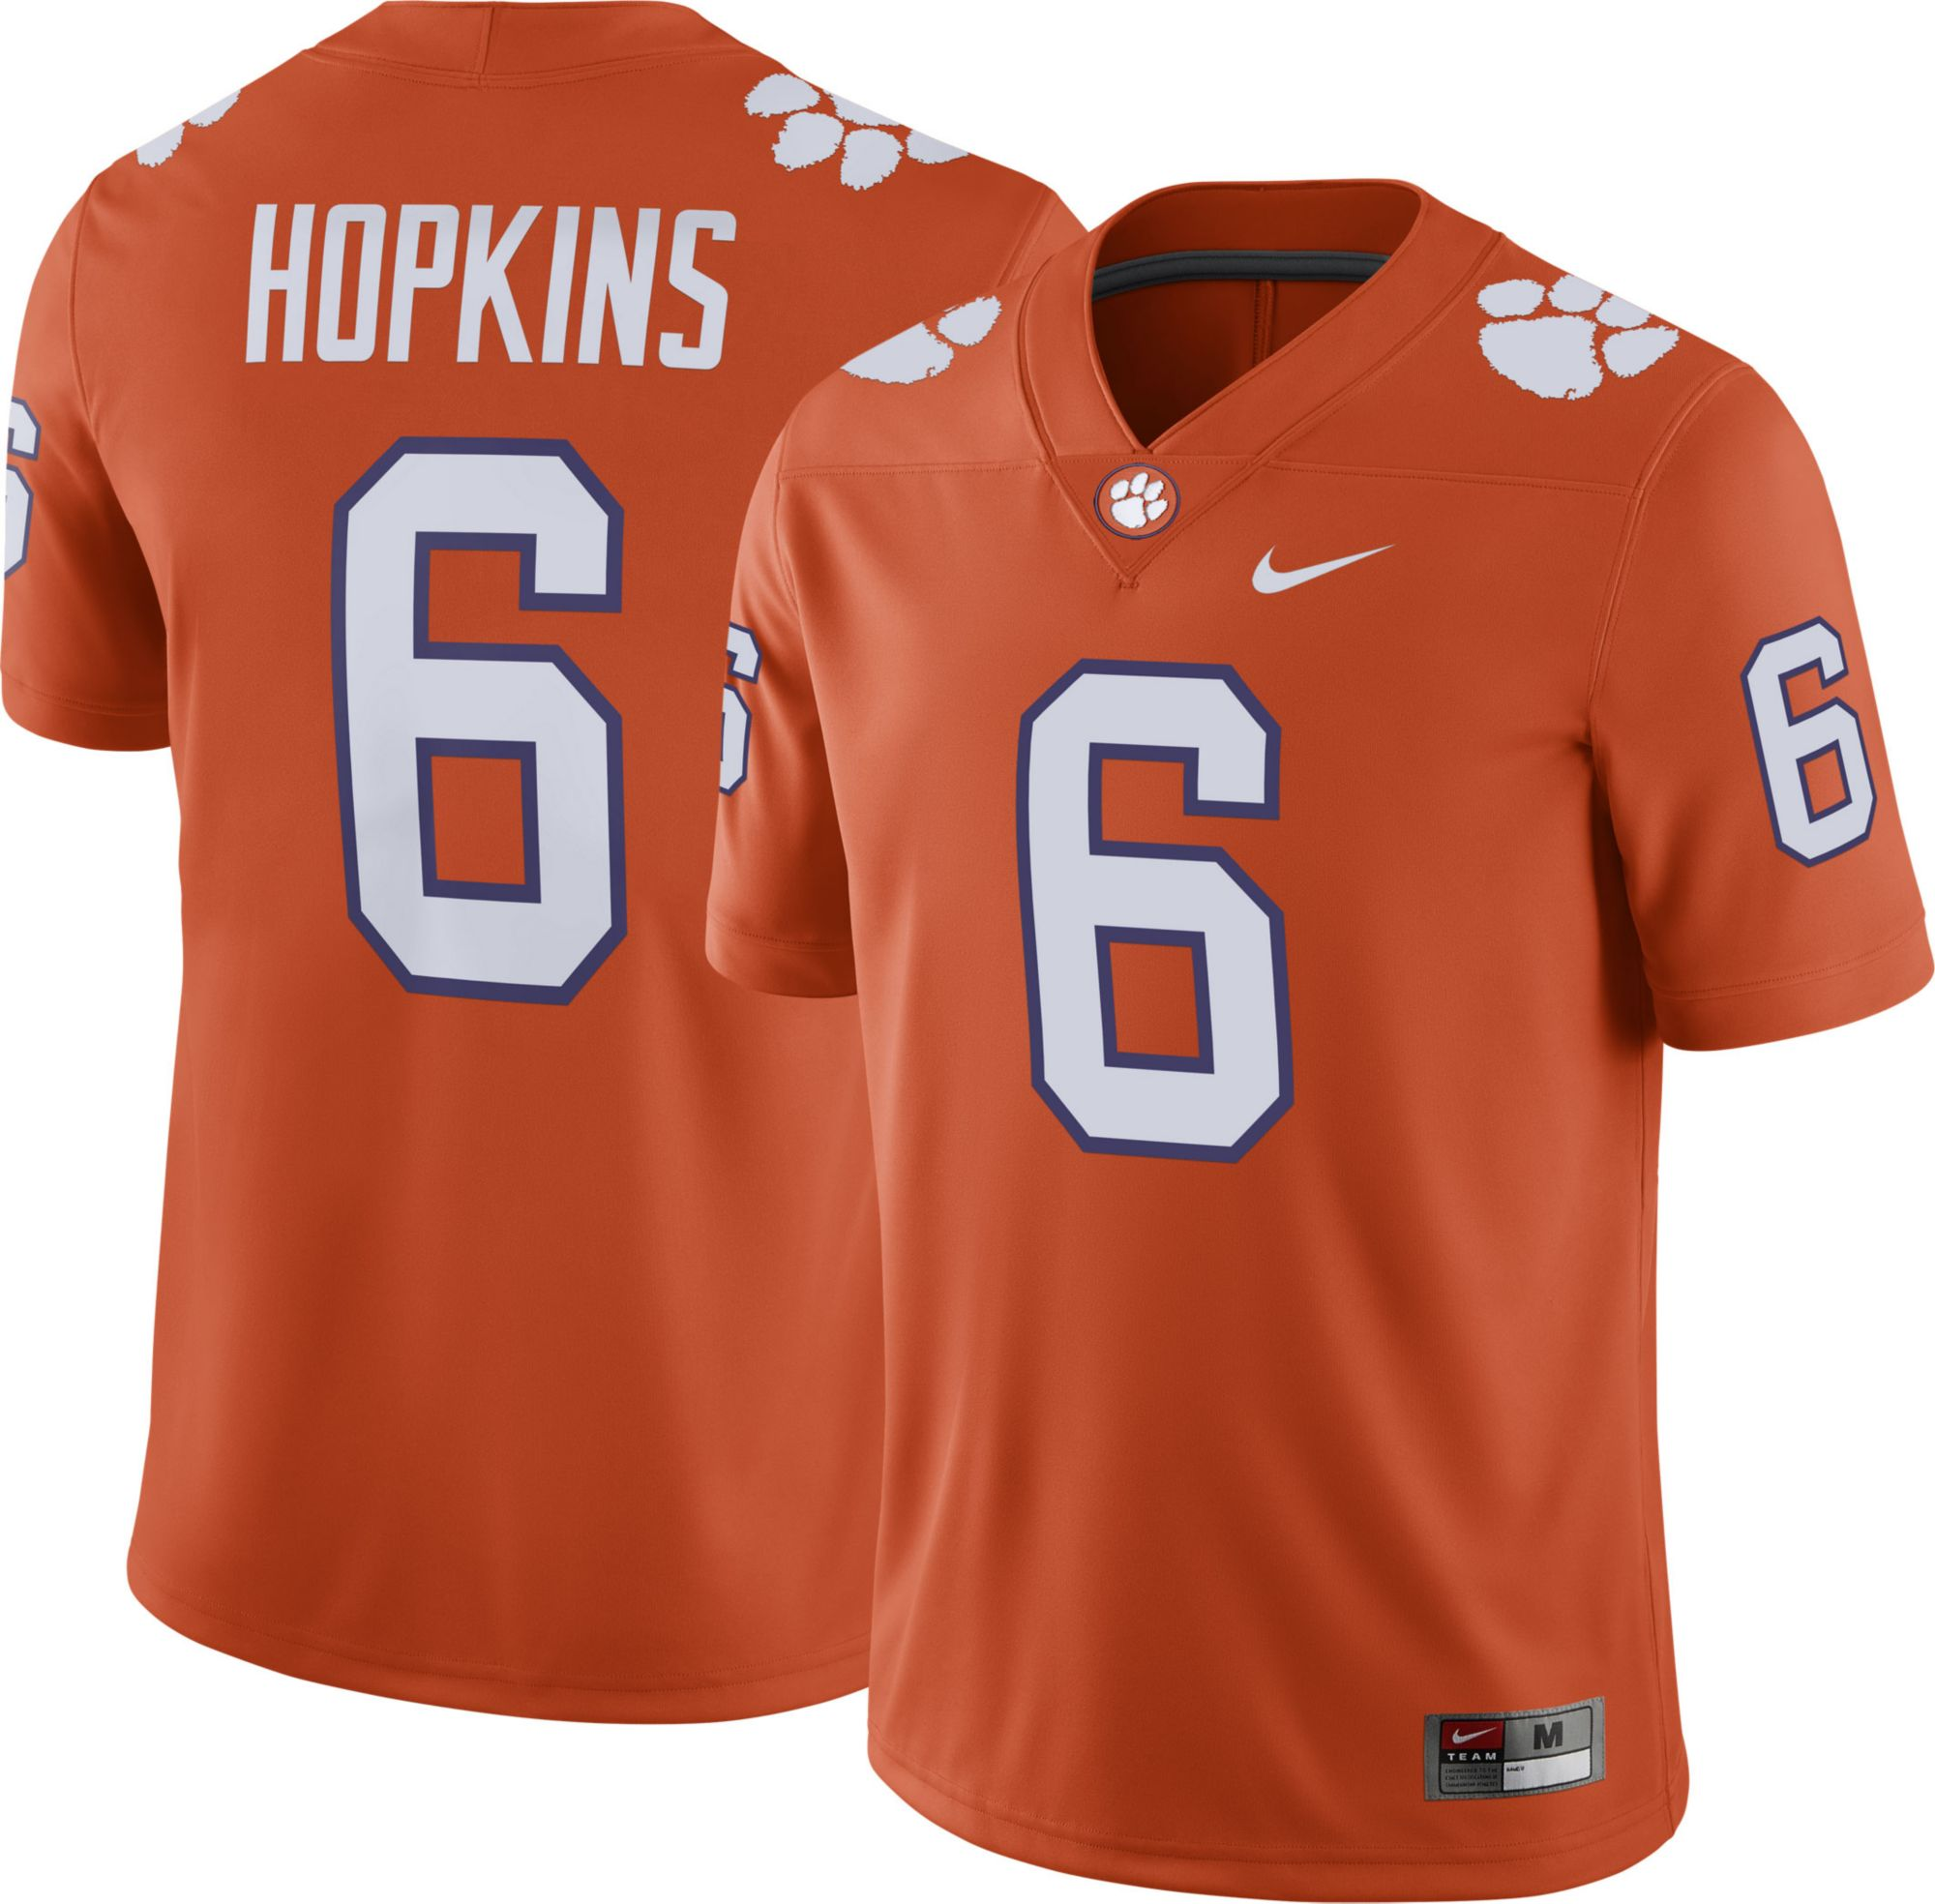 deandre hopkins signed clemson jersey